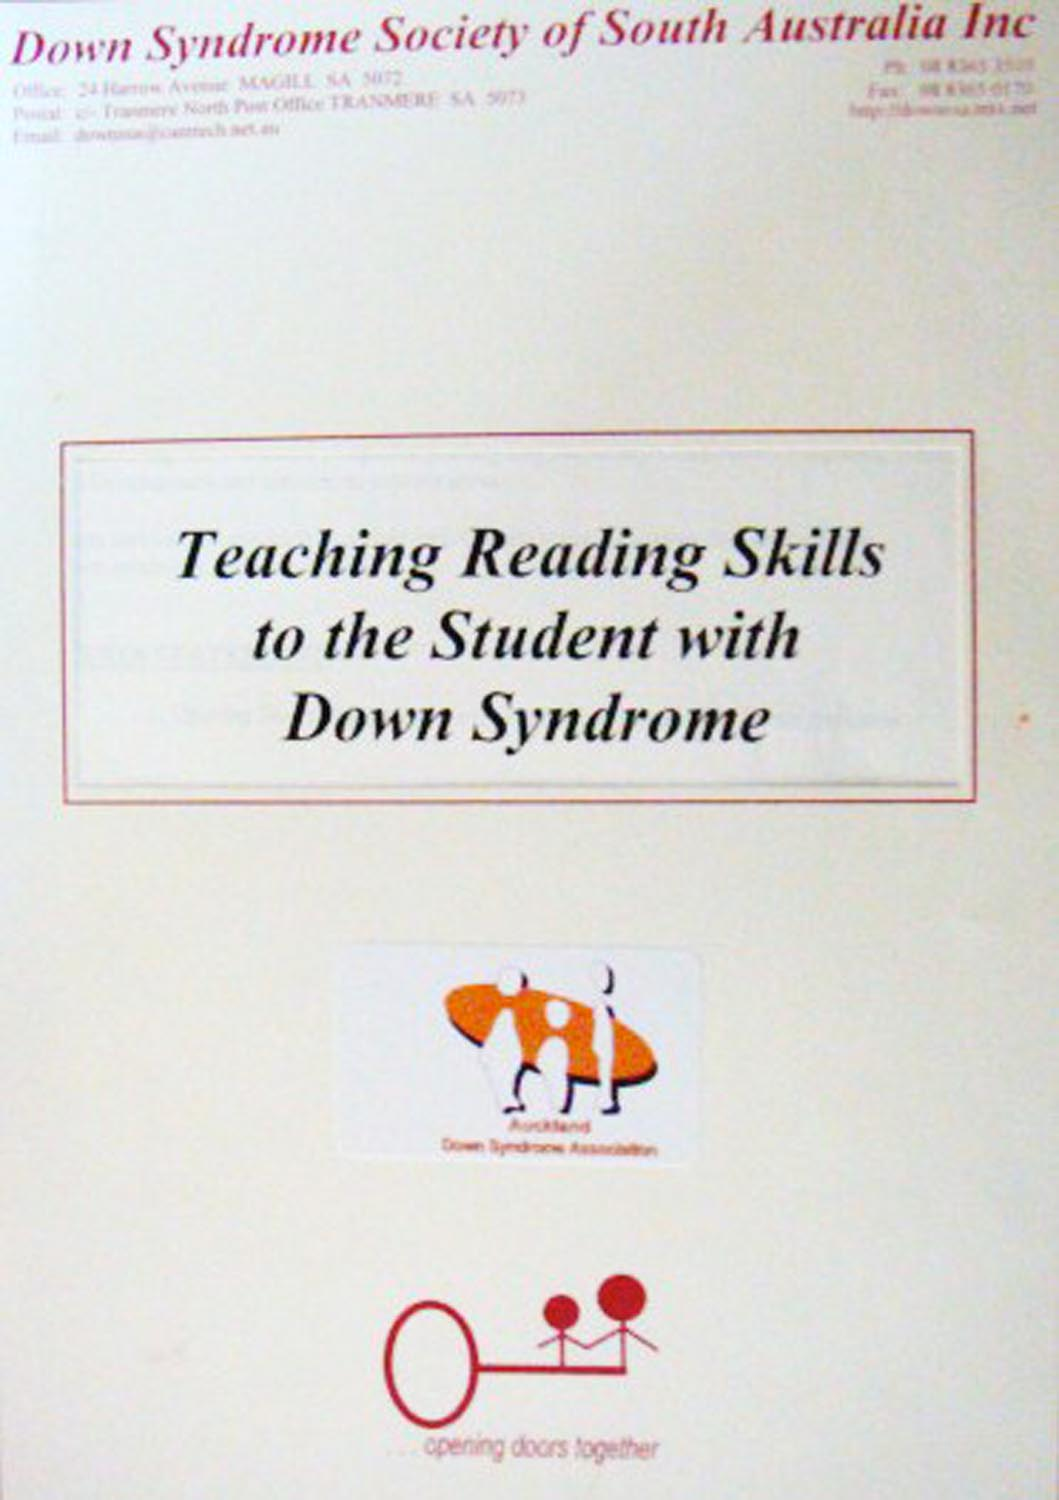 Teaching Reading Skills to the Student with Down Syndrome Image